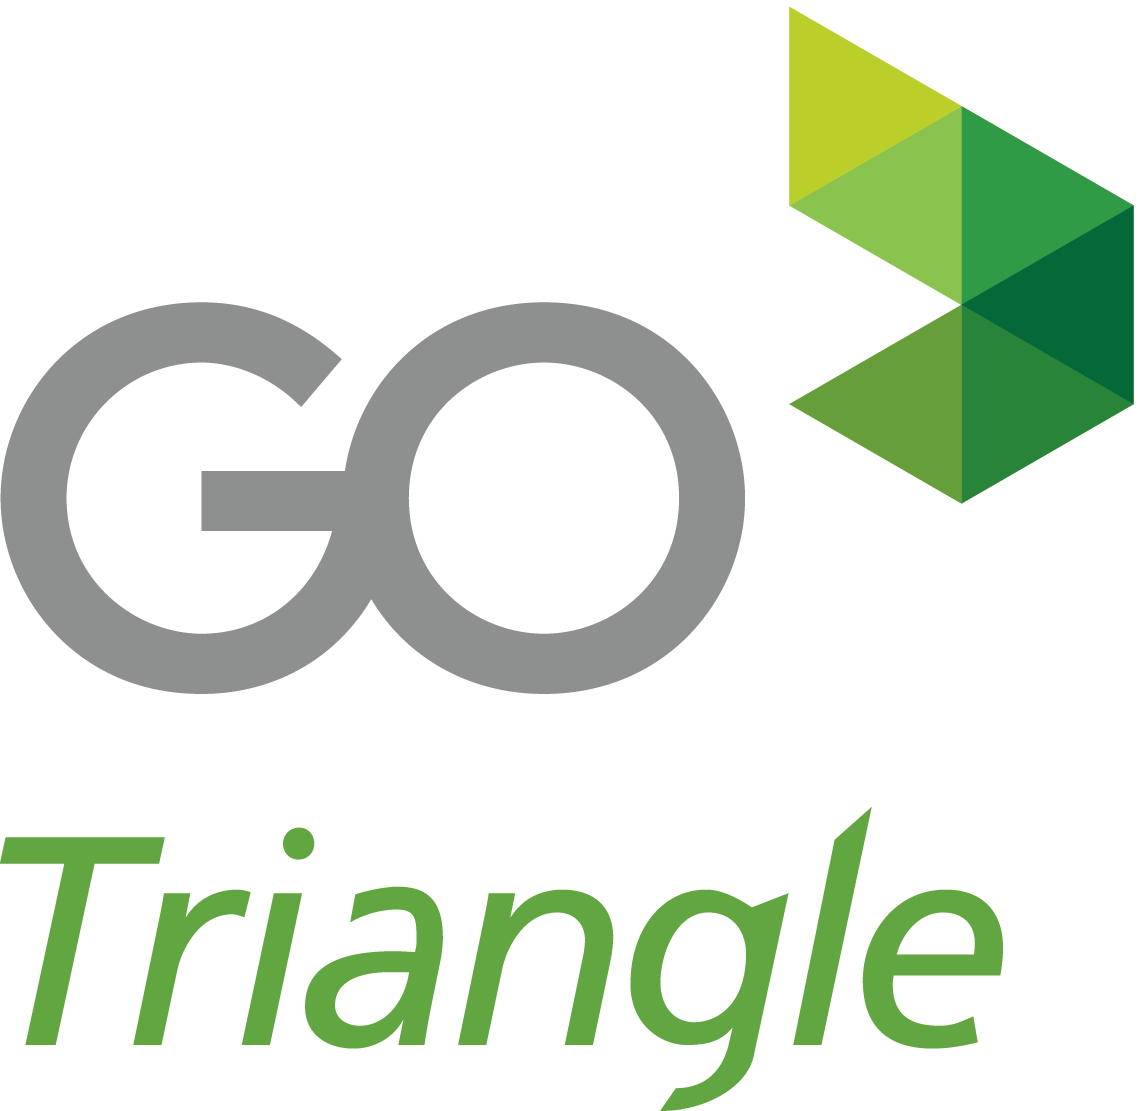 GOTriangle-secondary-color.png